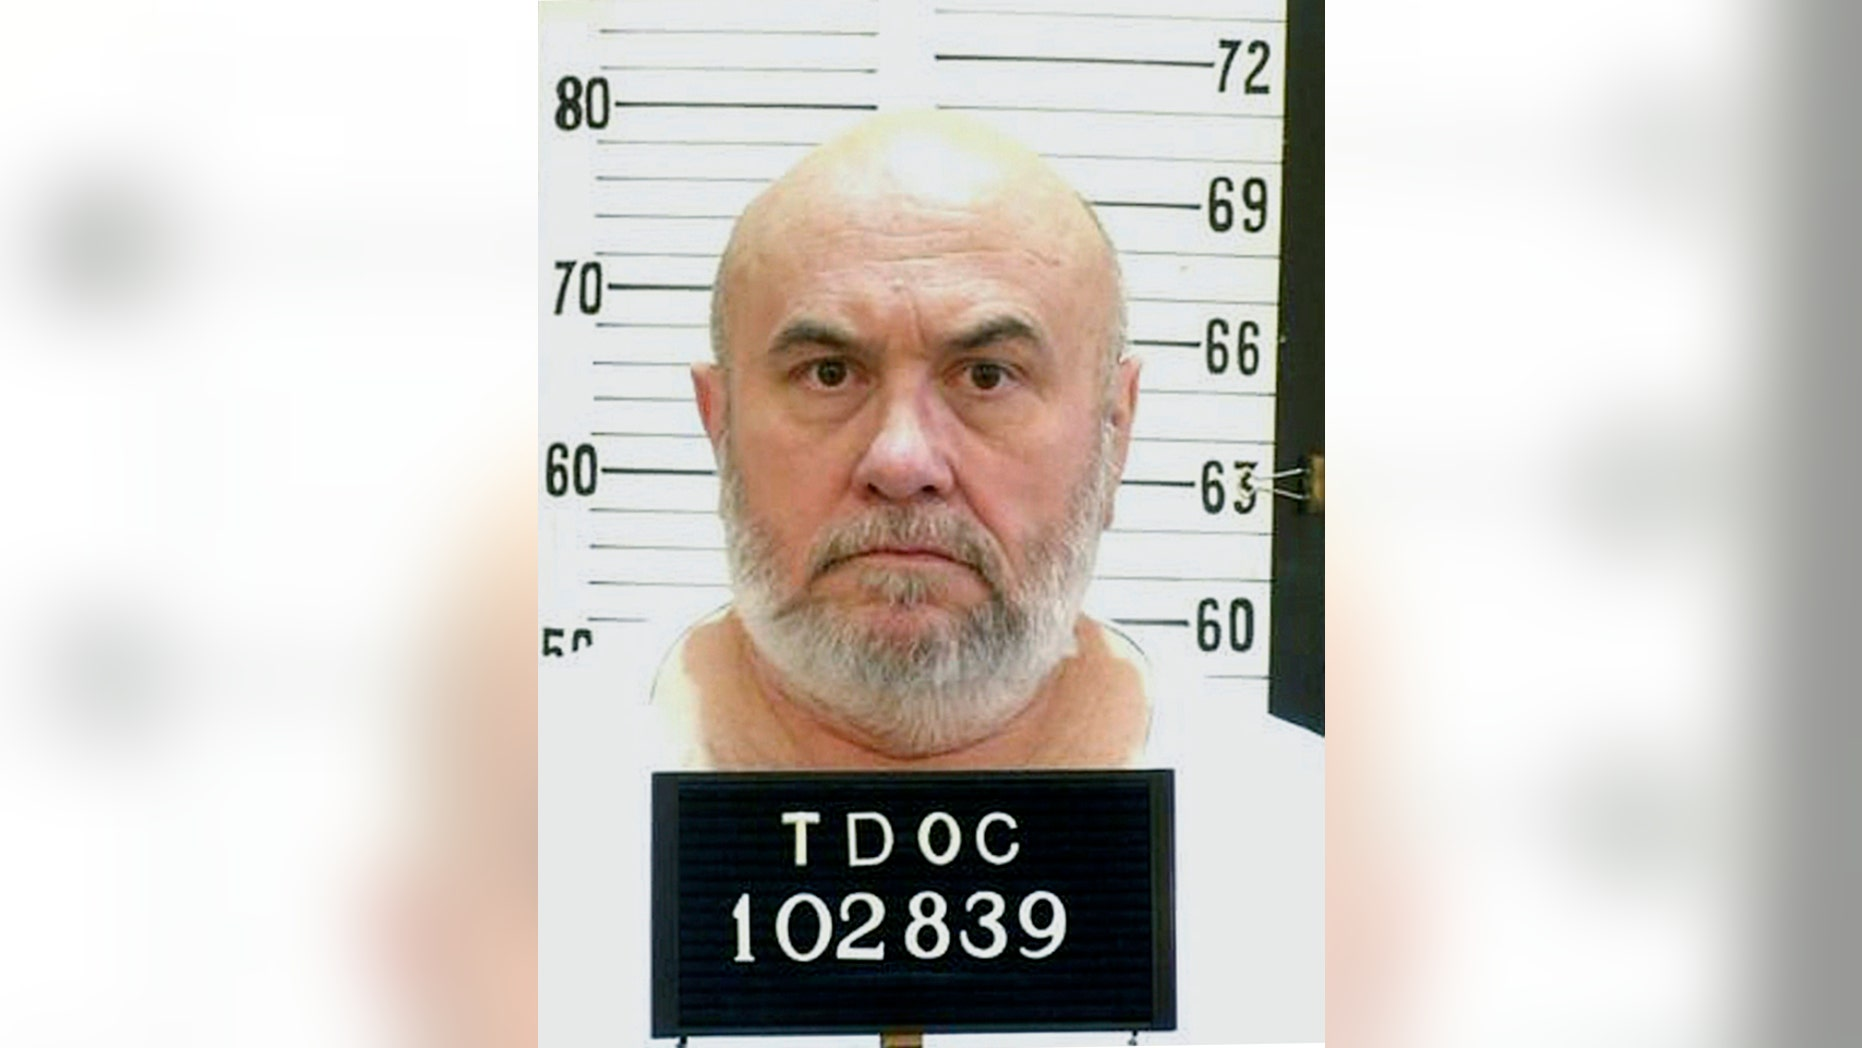 Death row inmate Edmund Zagorski chose pickled pig knuckles and pig tails as his last meal before his scheduled execution on Thursday.